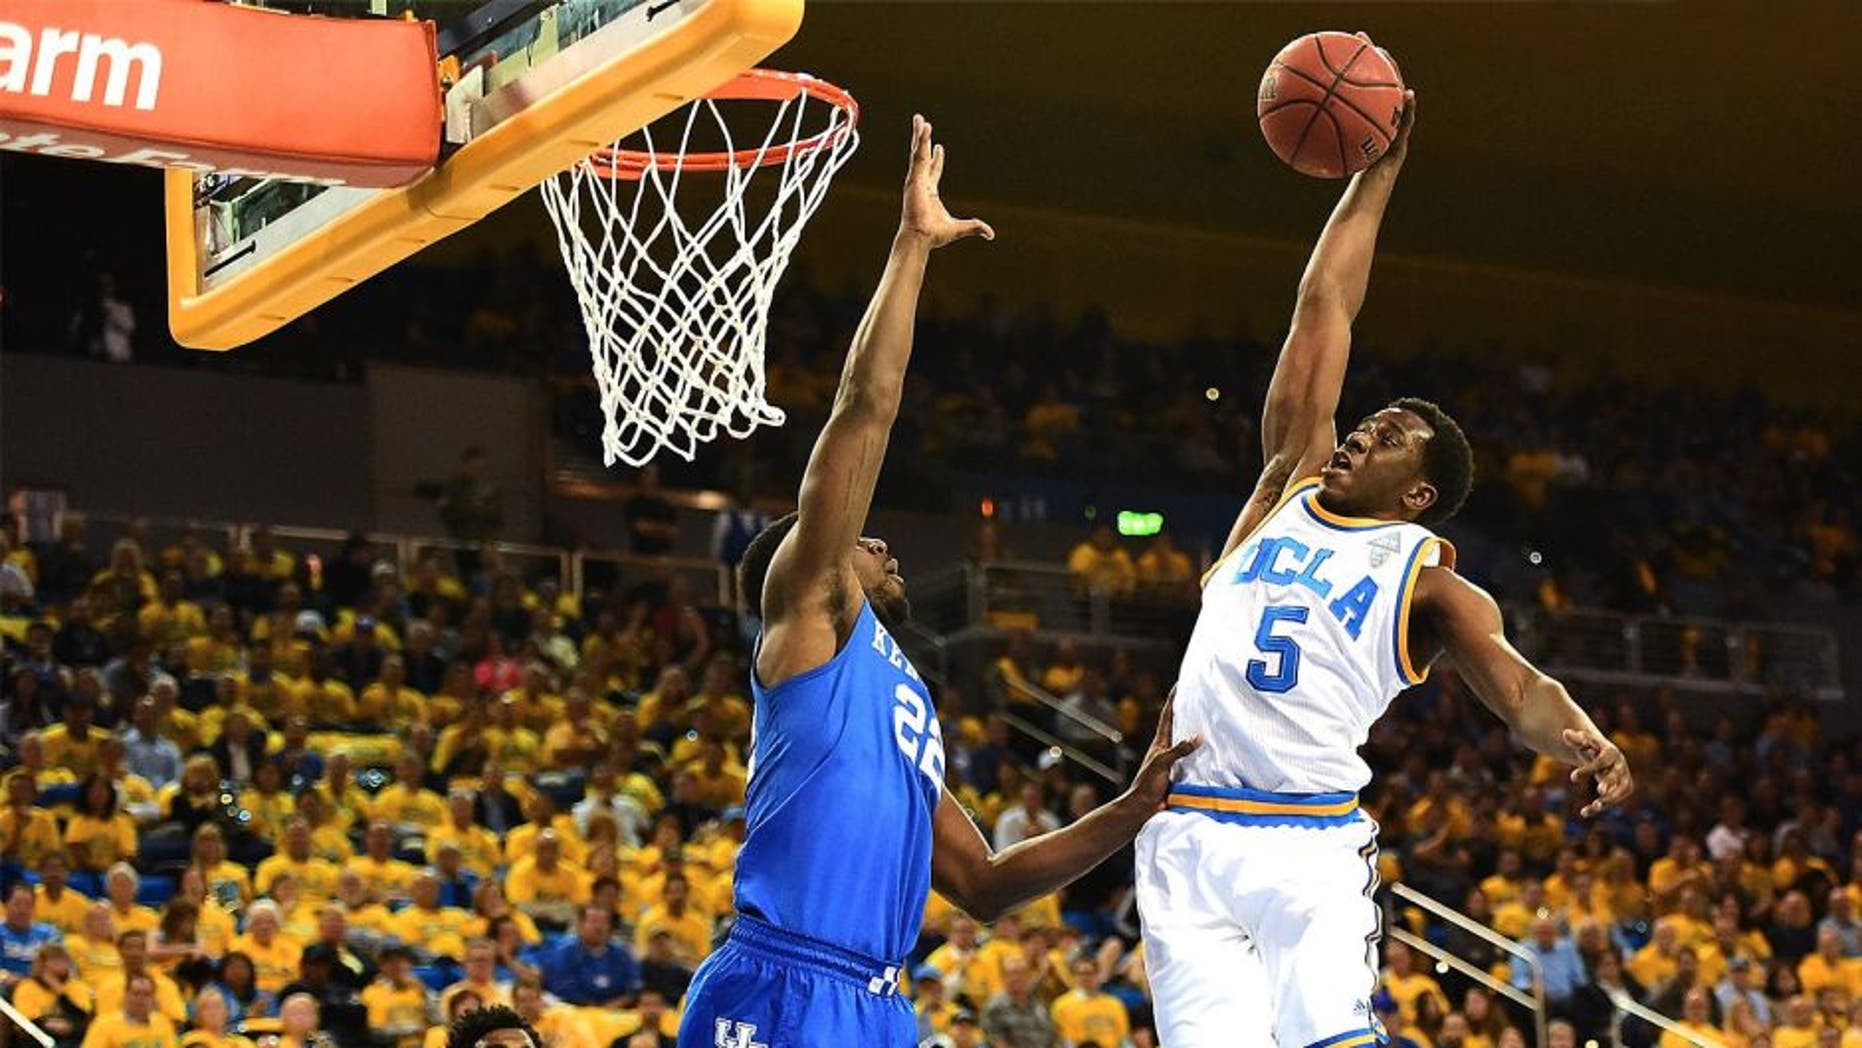 LOS ANGELES, CA - DECEMBER 03: Prince Ali #5 of the UCLA Bruins dunks over Alex Poythress #22 of the Kentucky Wildcats during an 87-77 UCLA win at Pauley Pavilion on December 3, 2015 in Los Angeles, California. (Photo by Harry How/Getty Images)